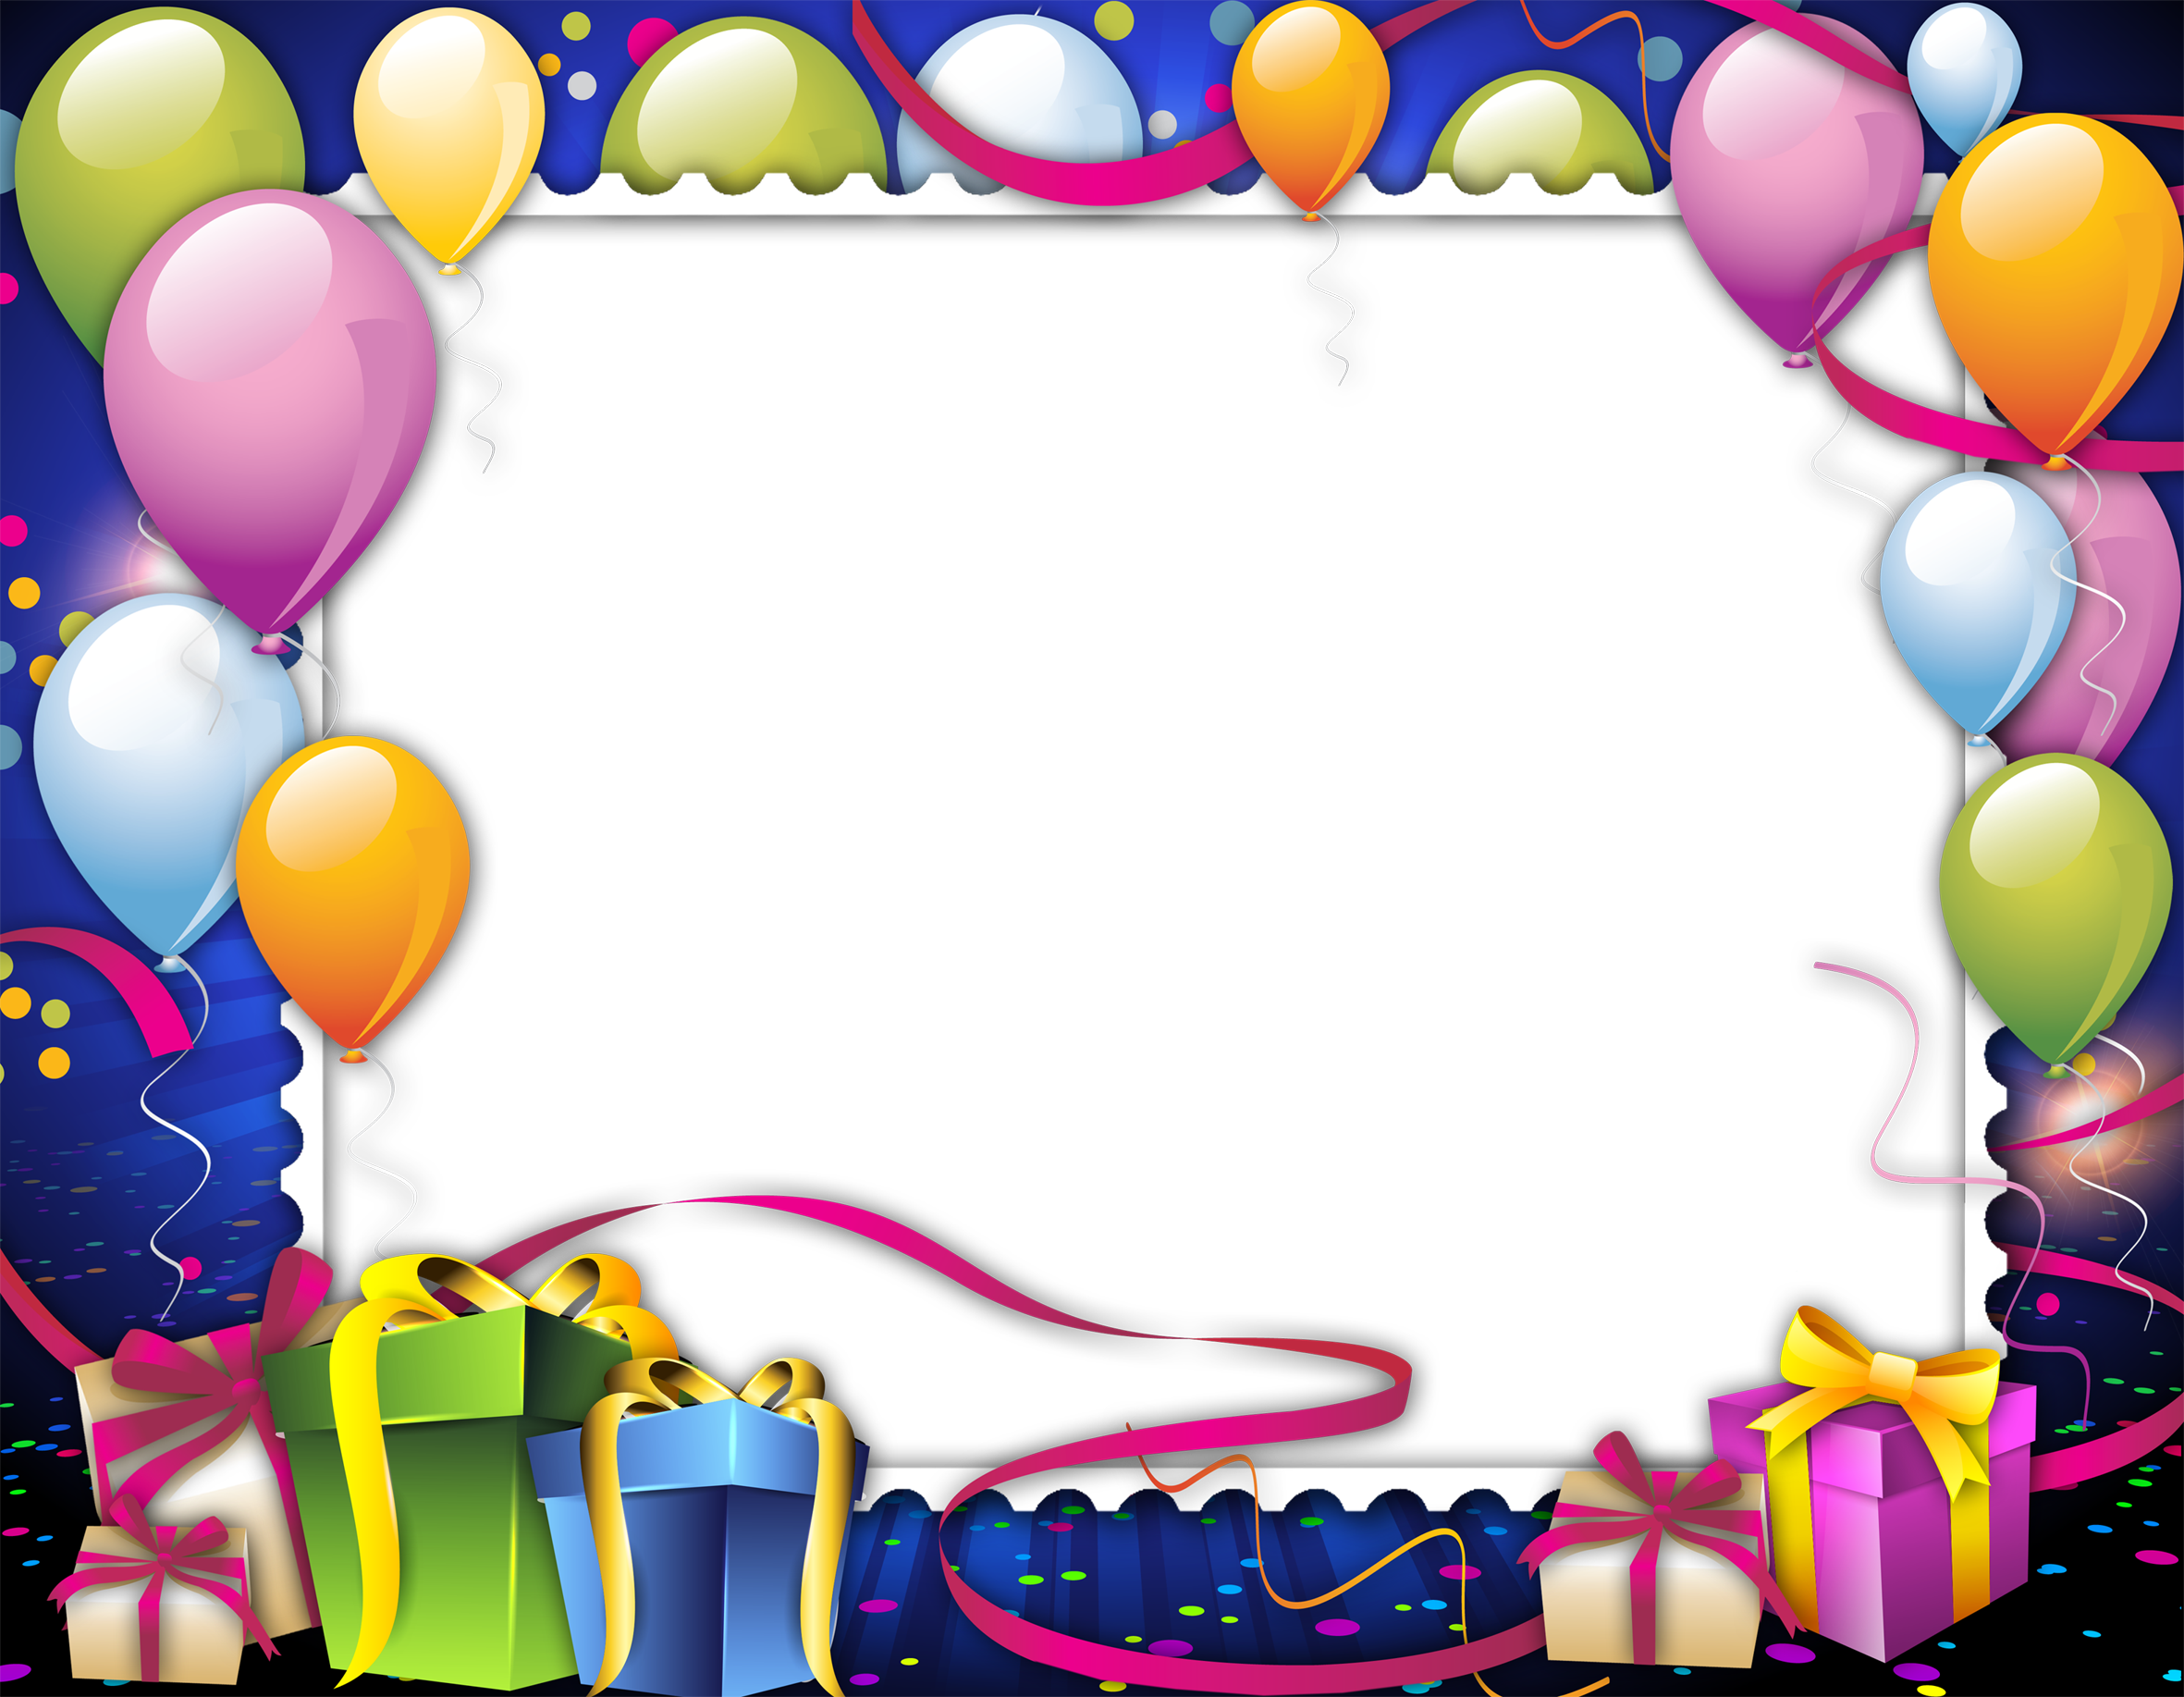 Birthday Frame Png Images Free Download